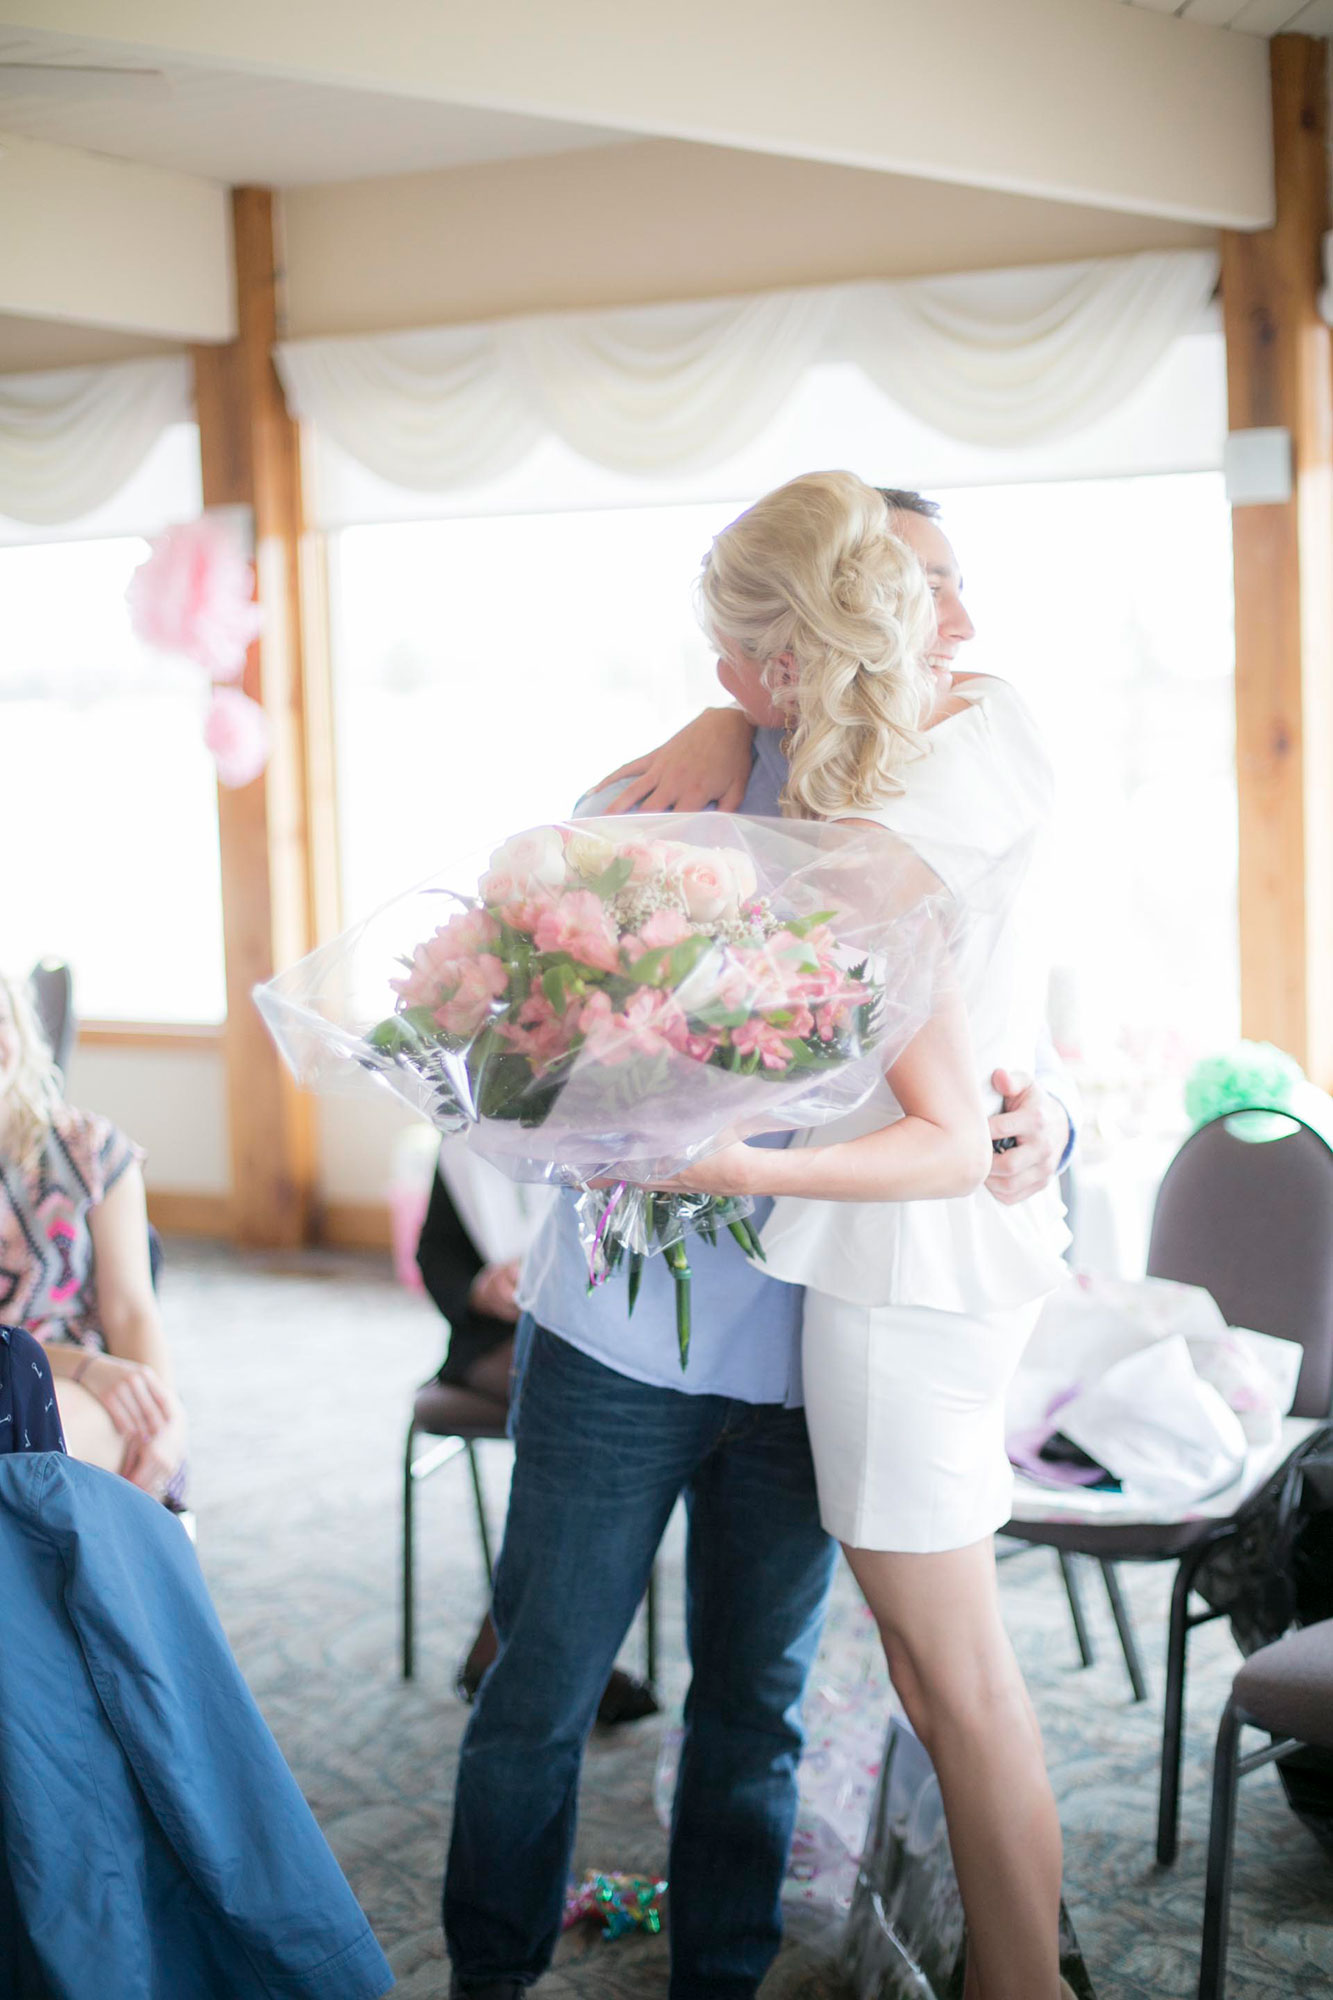 Rockway-Vineyards-Bridal-Shower-Vineyard-Bride-Photo-By-Andrea's-Impressions-030.jpg